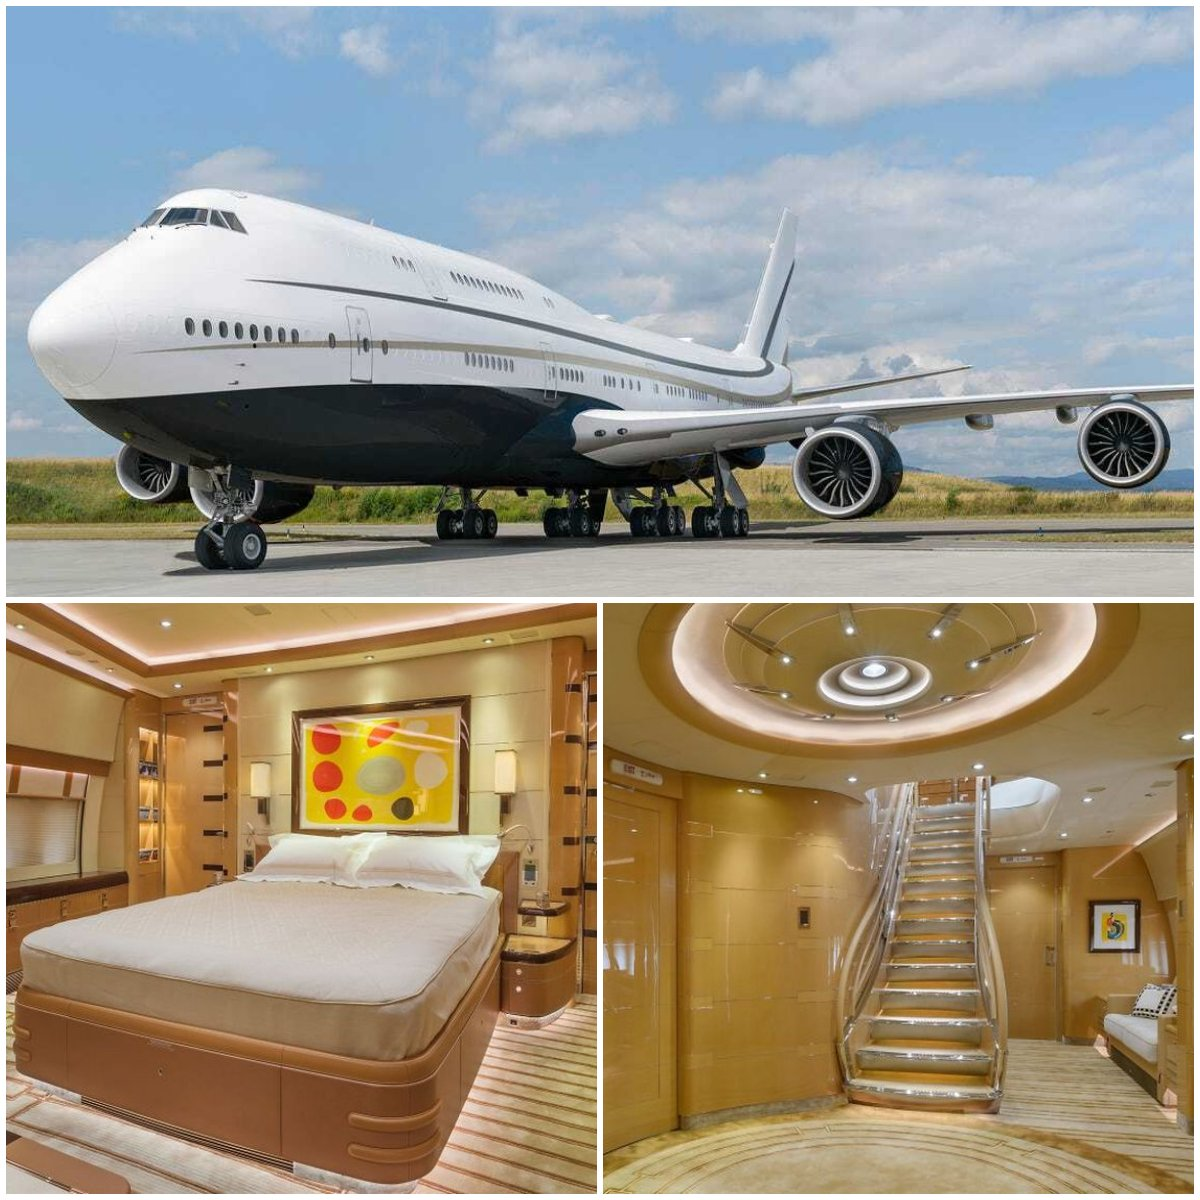 From lounges to dining areas to a spacious master bedroom and even a walk in shower – Take a look inside this Middle Eastern businessman's very own private Boeing 747 Jumbo jet